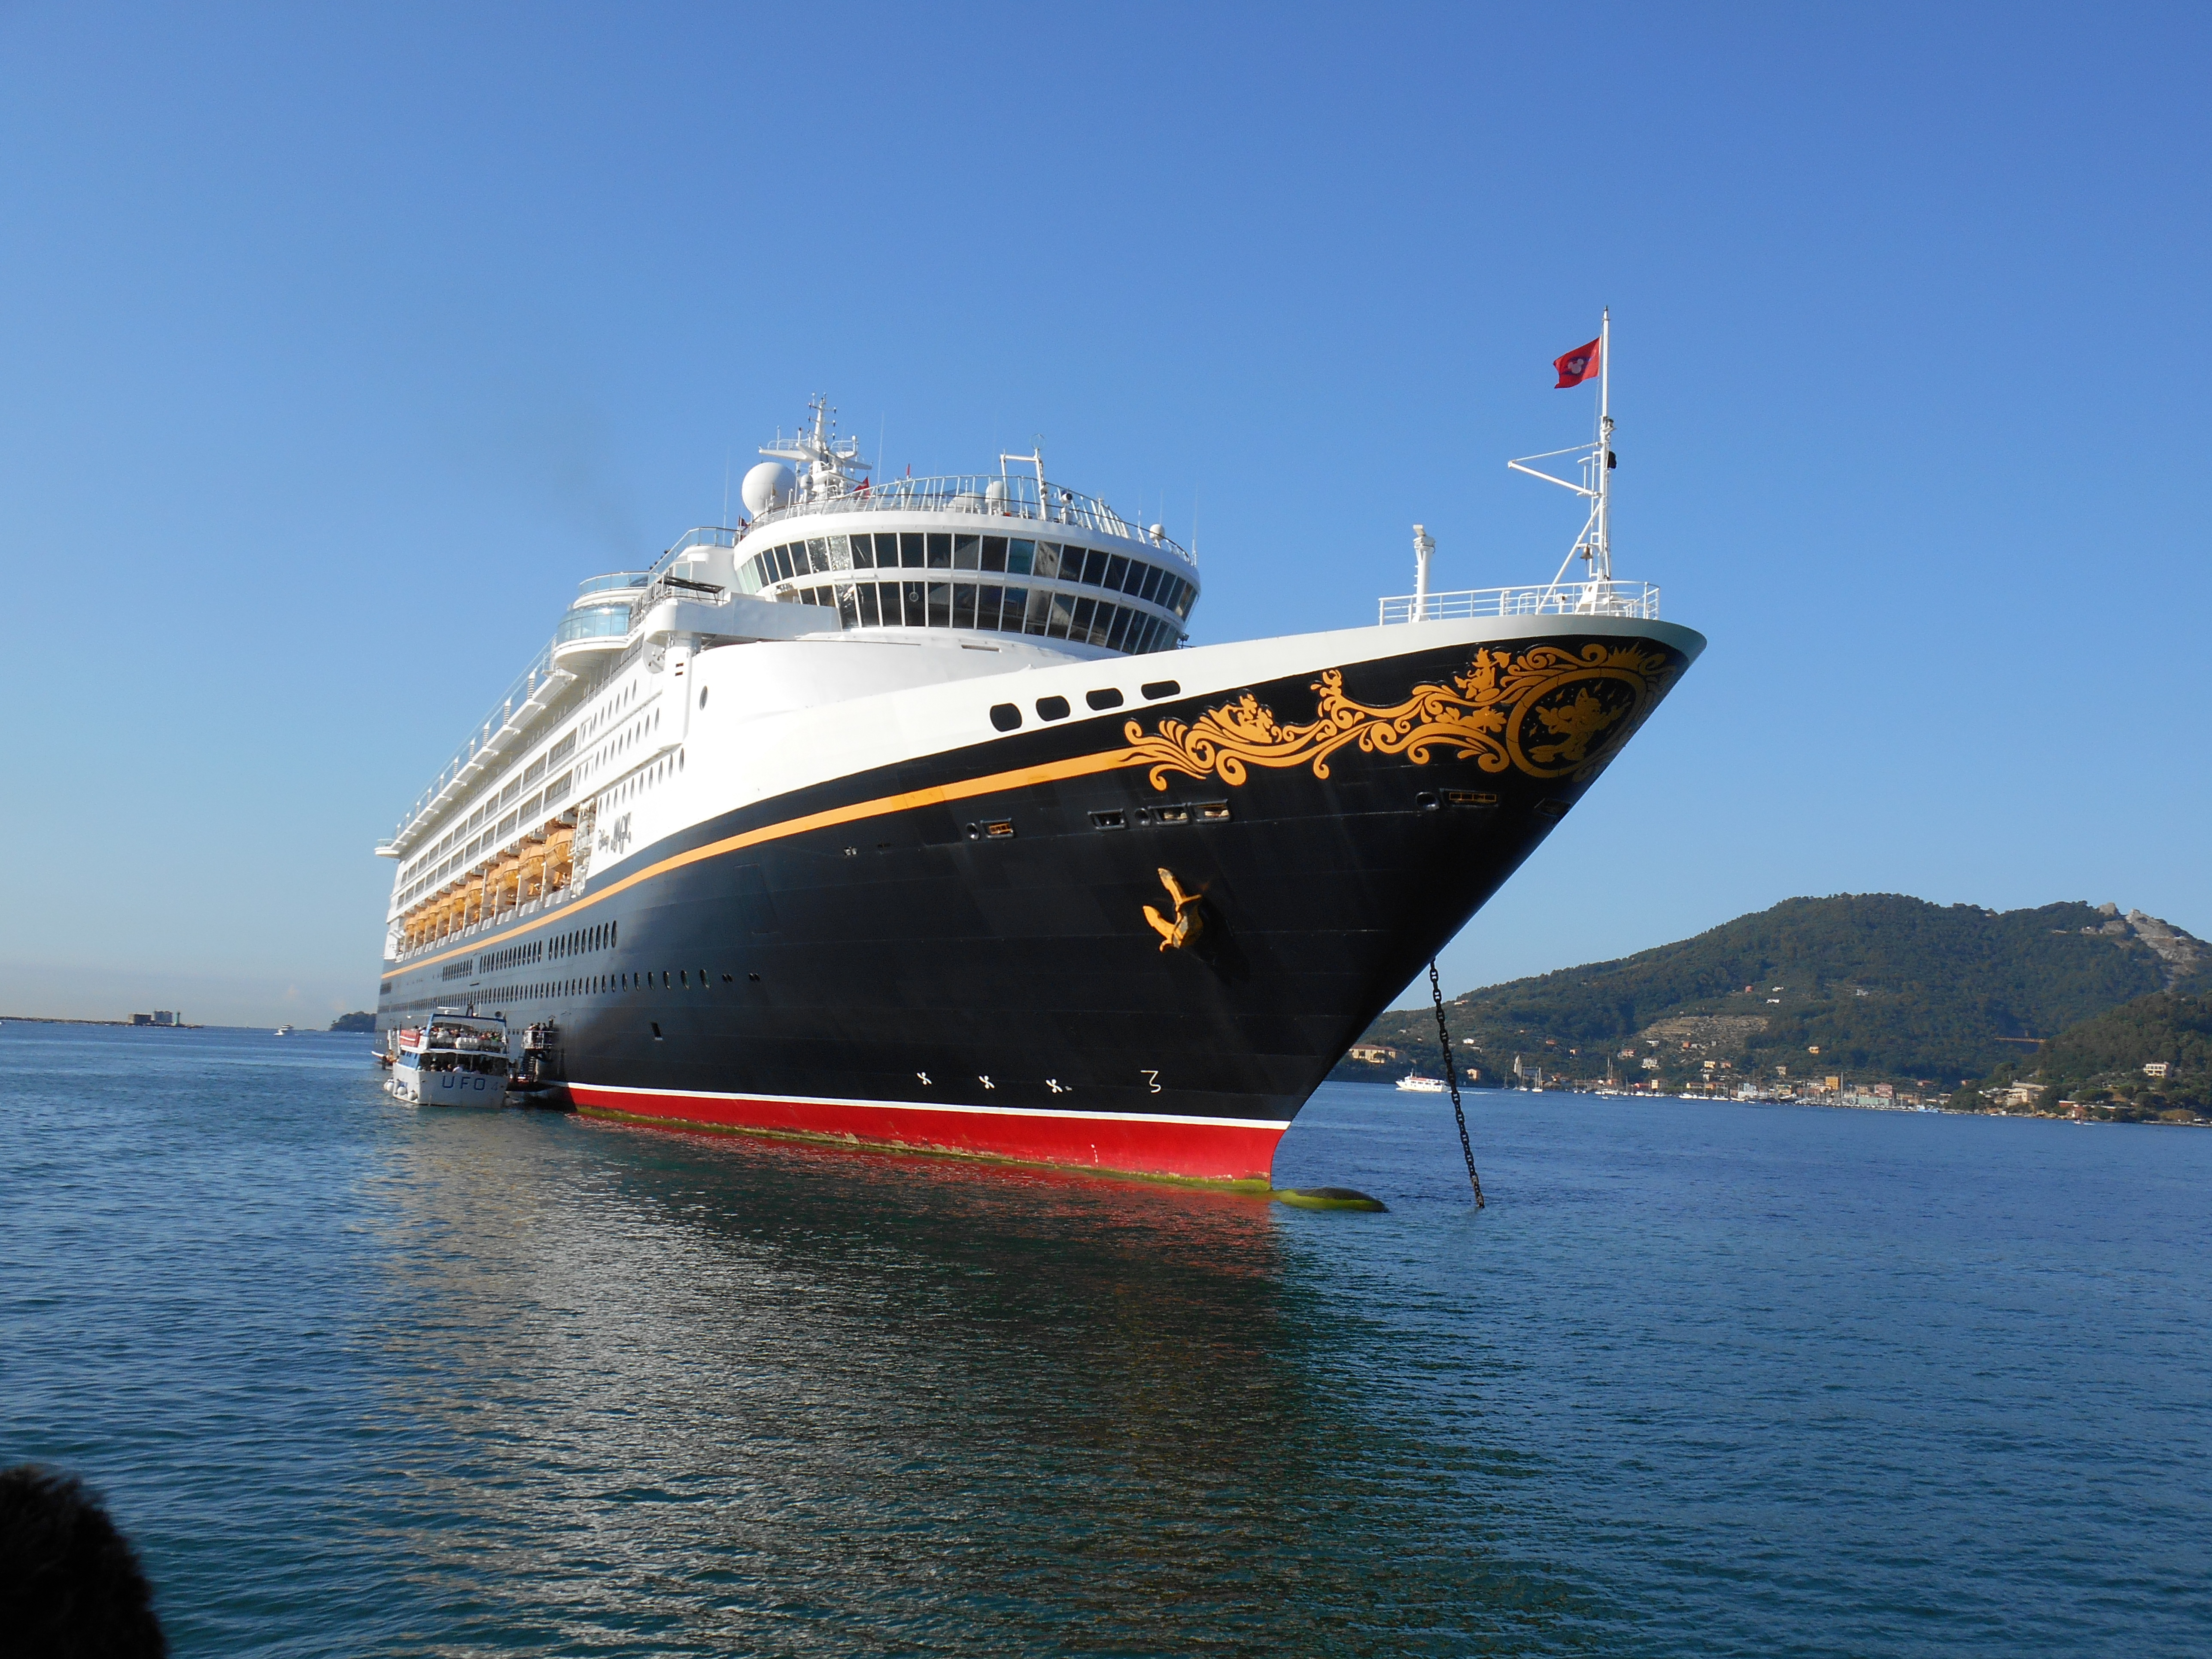 Cruising The Mediterranean On The Disney Magic